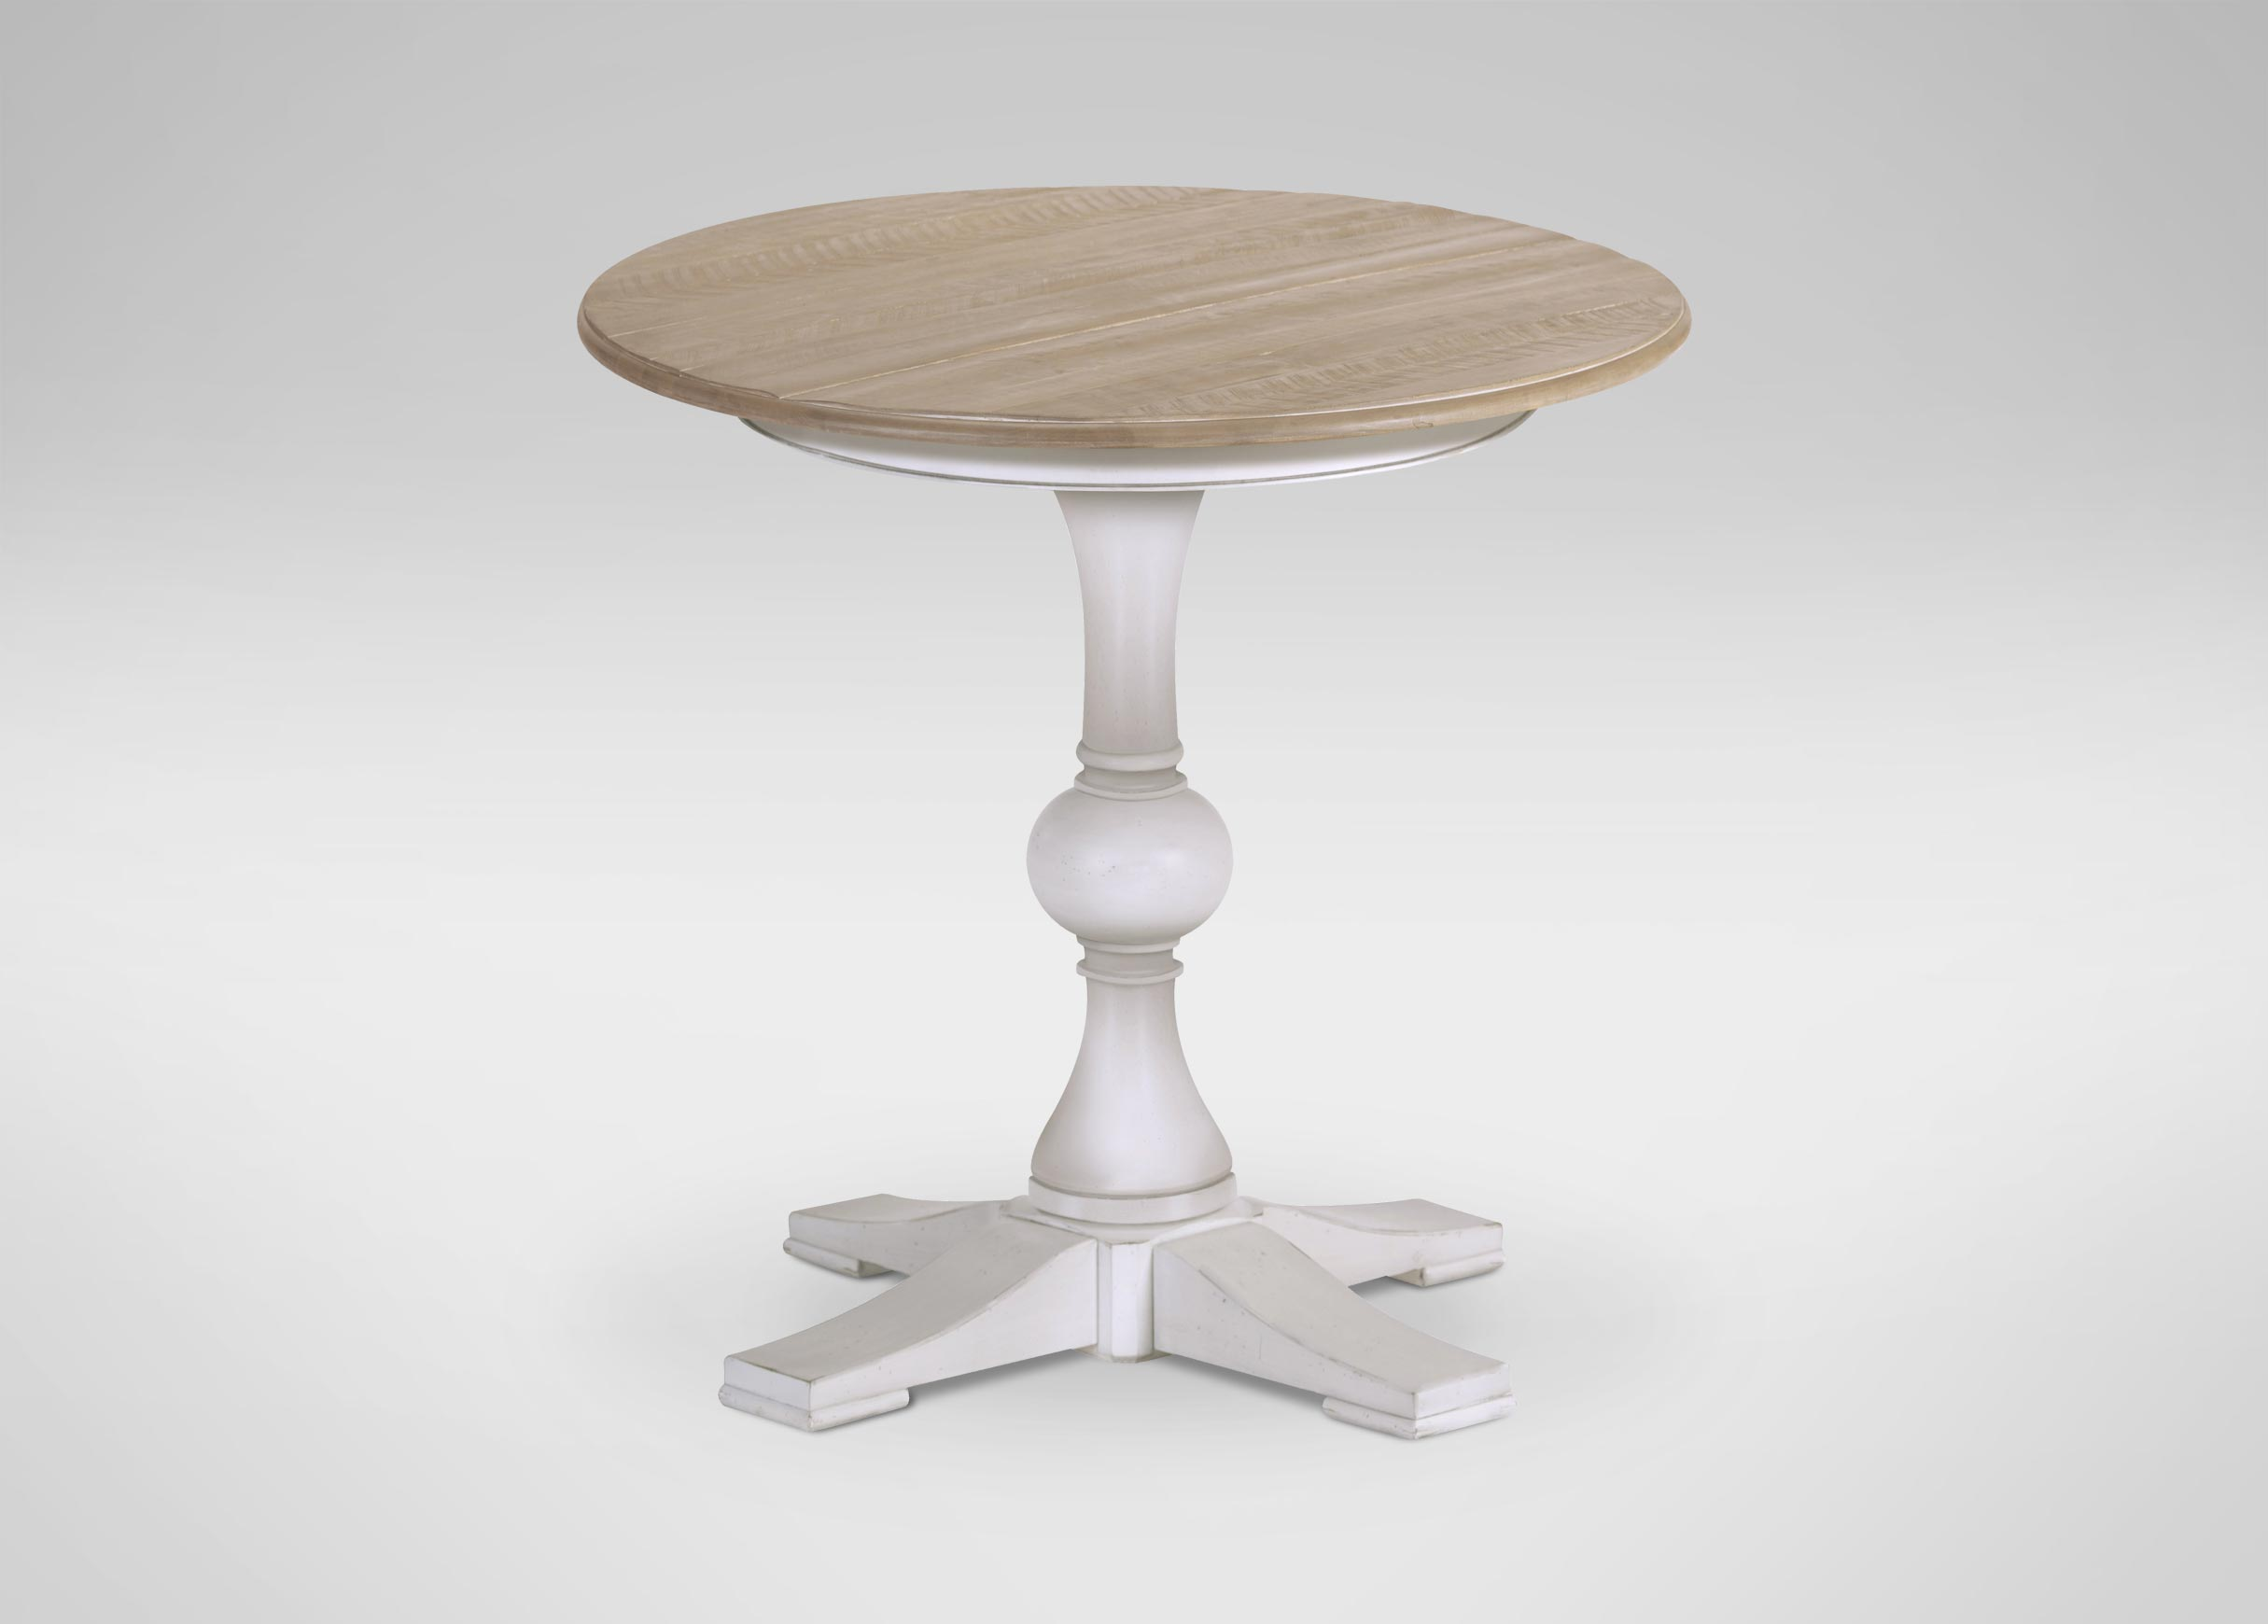 Cooper Counter Height Rustic Dining Table Dining Tables : 15 6853 2209T635BDI from ethanallen.com size 2430 x 1740 jpeg 79kB